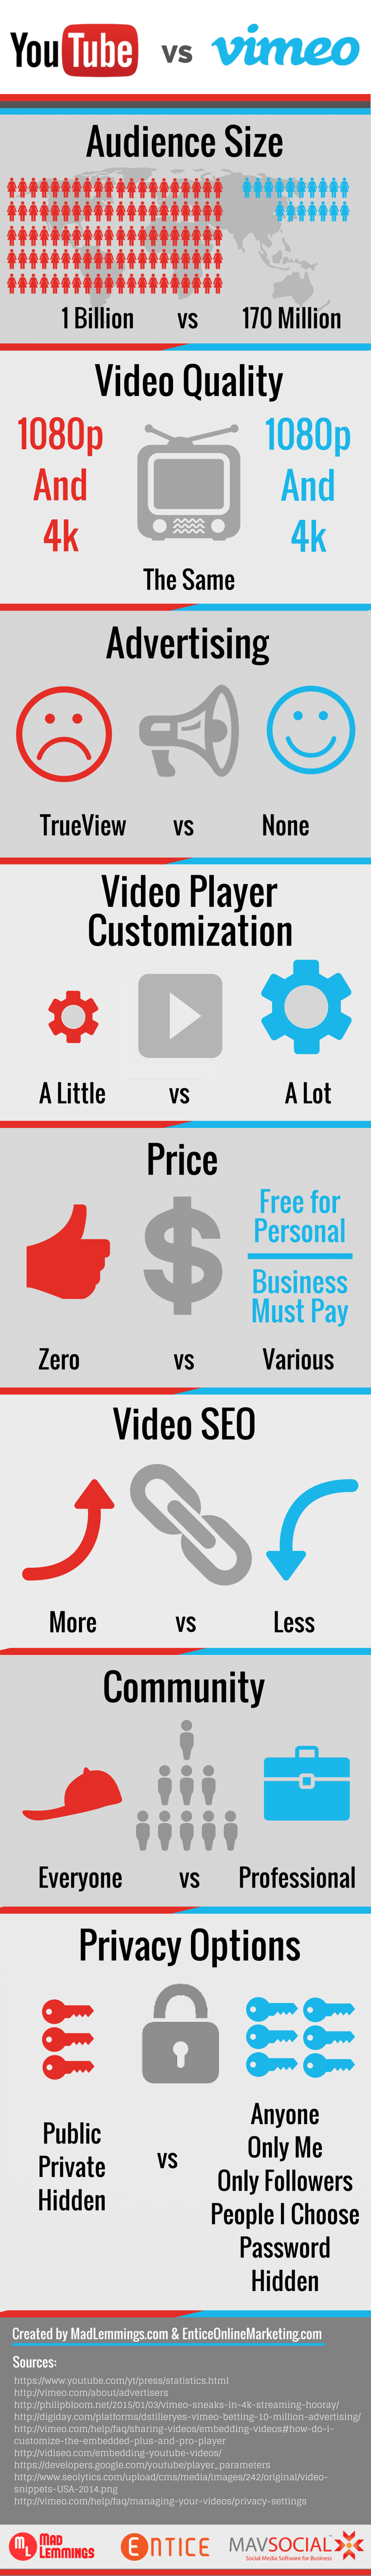 Vimeo vs YouTube: Which Video Platform is Right For You